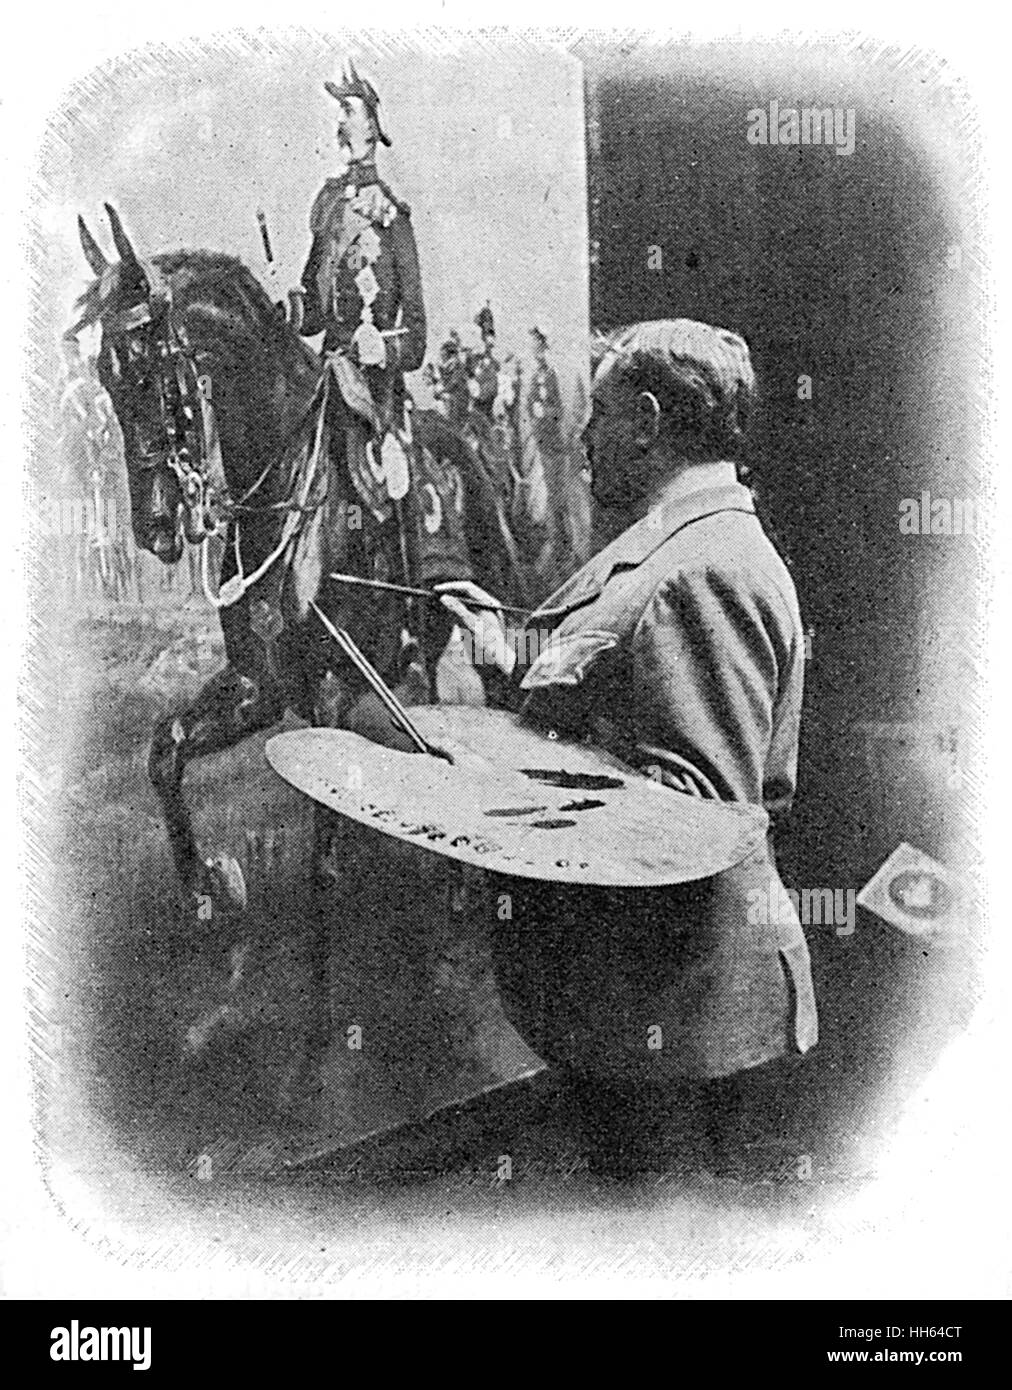 Richard Caton Woodville (1856-1927) painter of military scenes and artist for the Illustrated London News for the - Stock Image